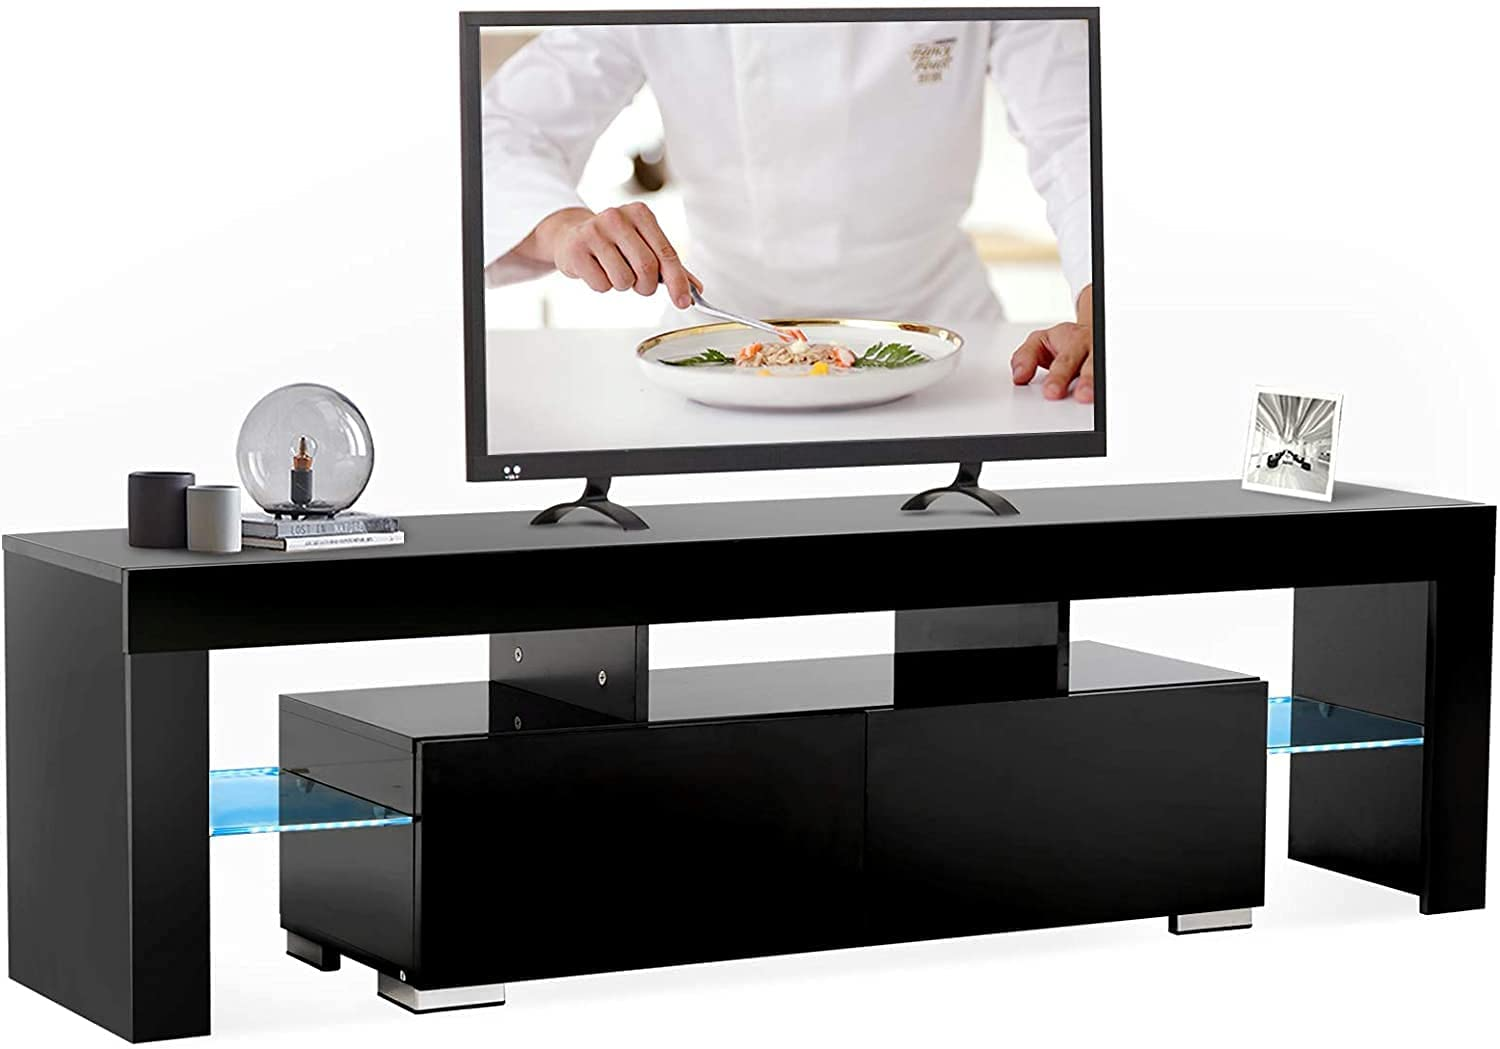 Mecor Black LED Modern Design Recommendation wi Colors Stand TV NEW before selling ☆ 12